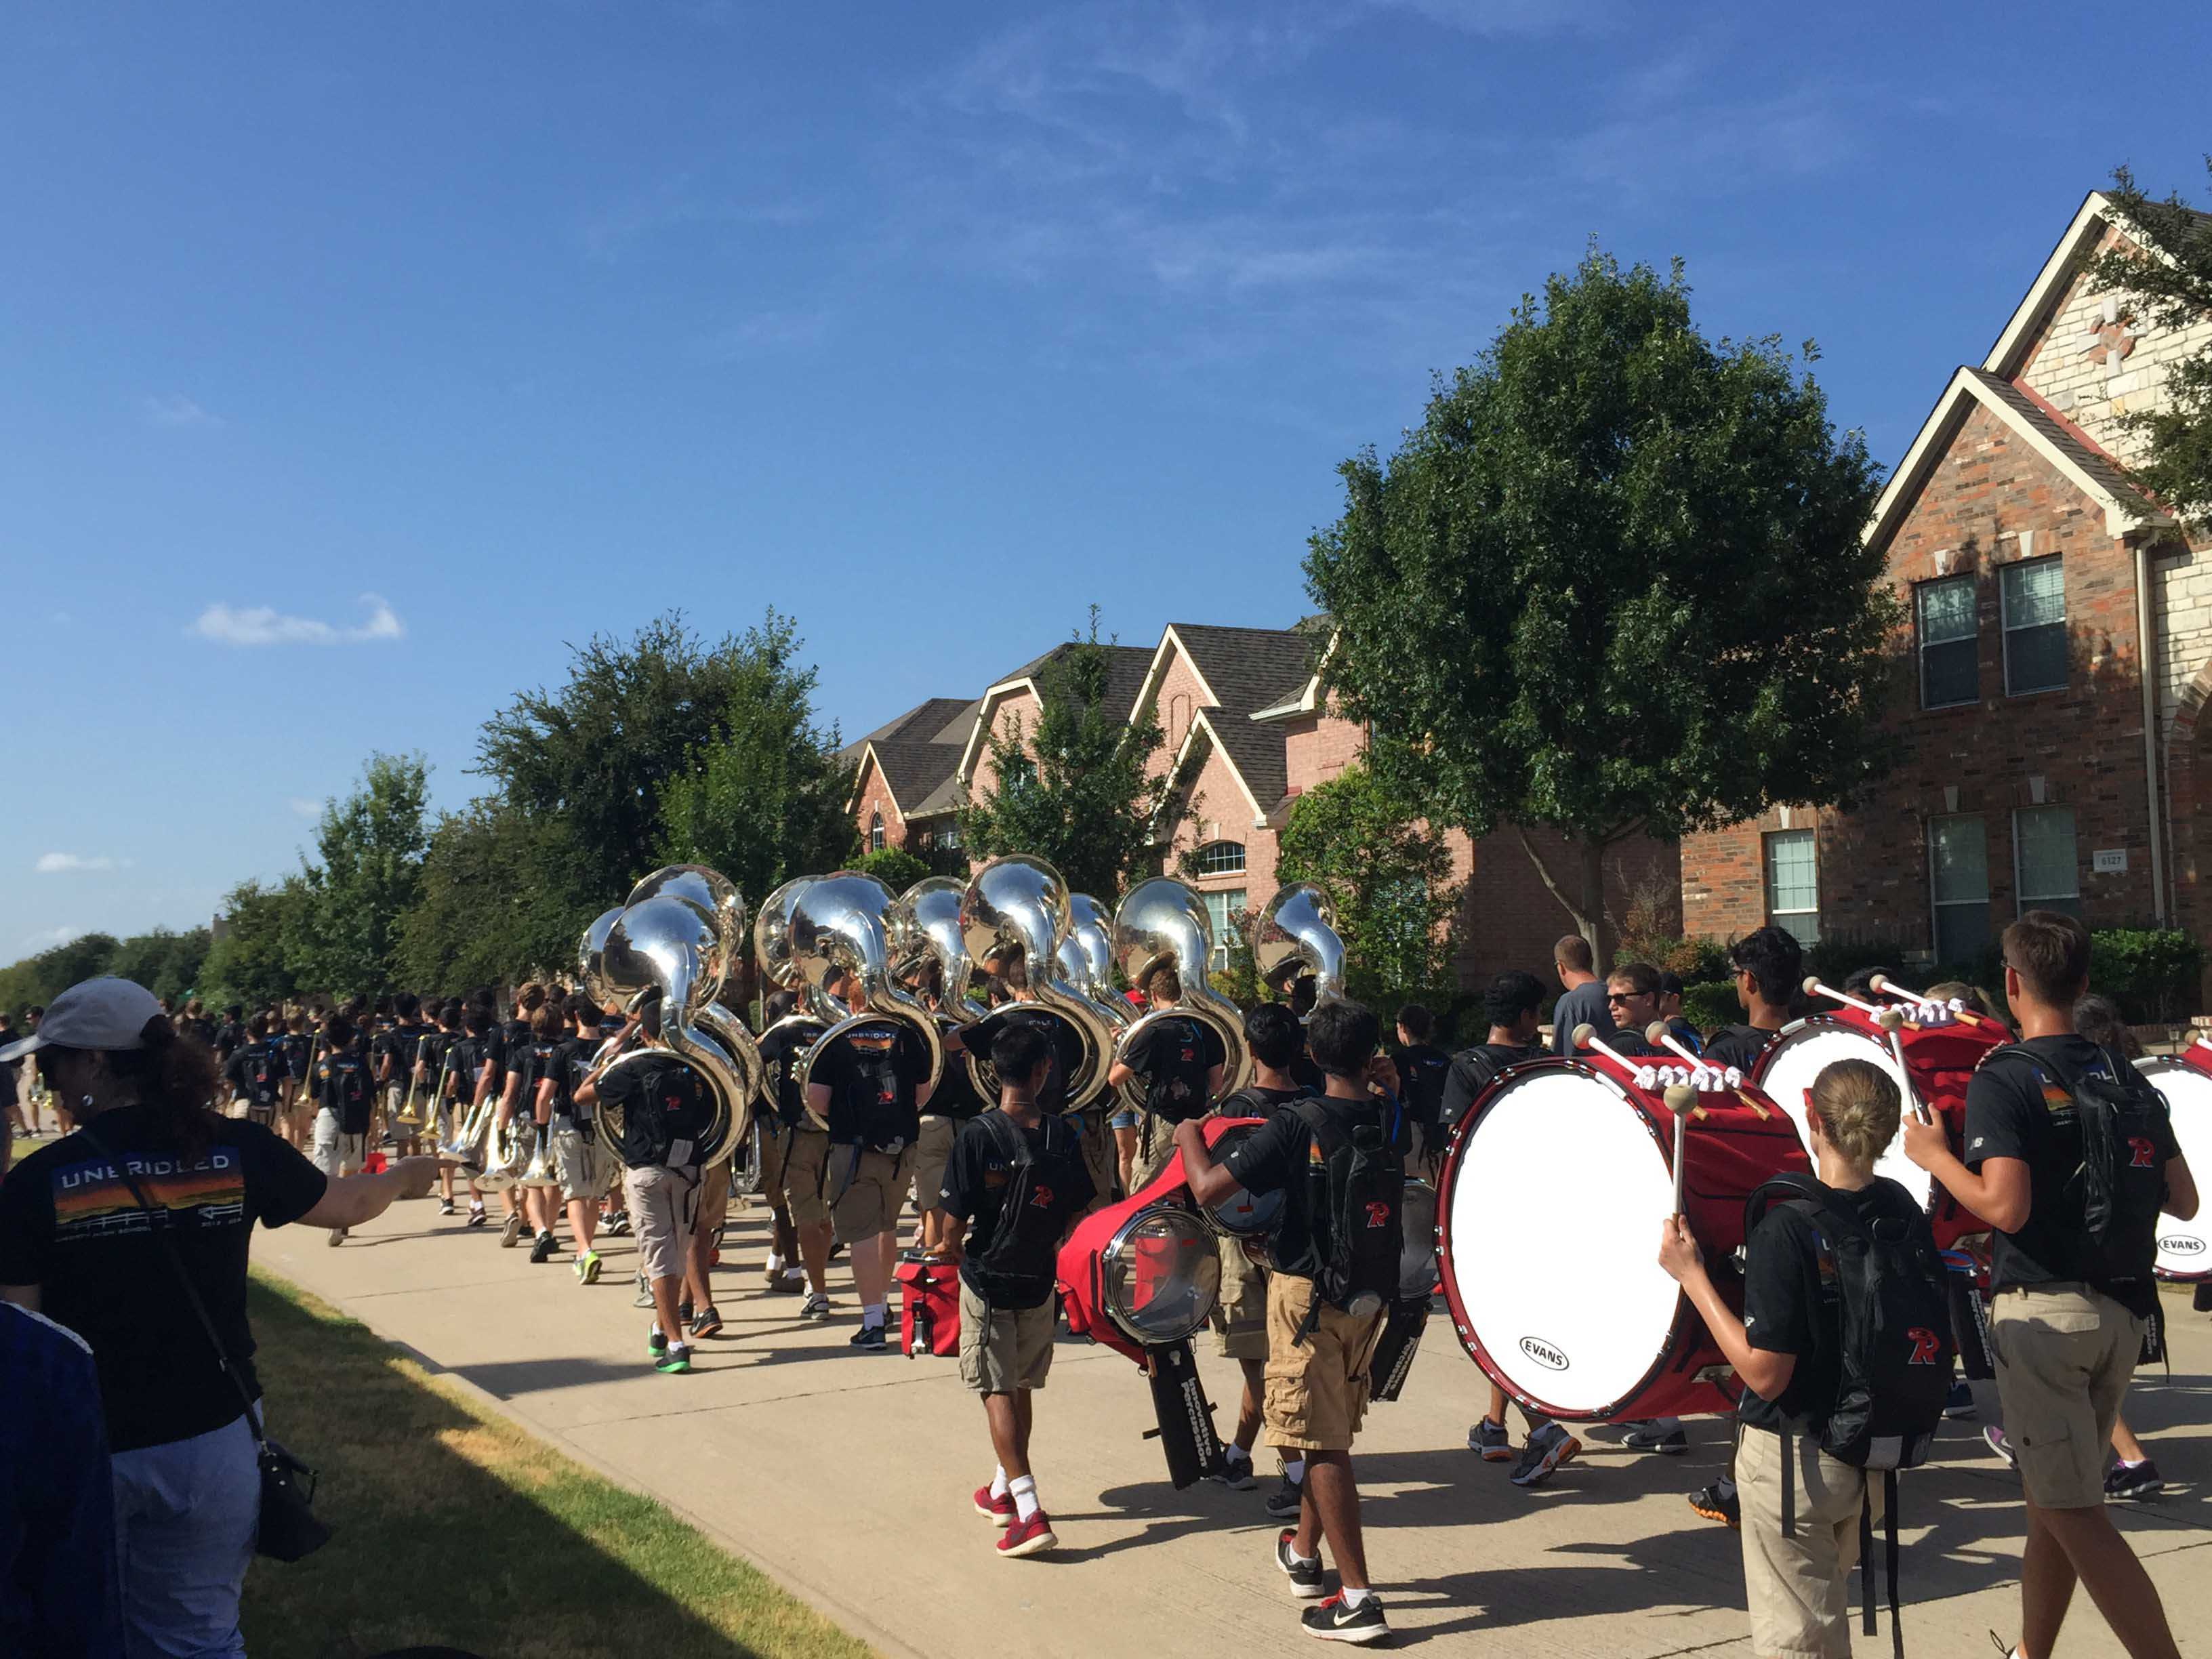 After playing at performing at Friday's football game in McKinney, the band took to local neighborhoods less than 12 hours later for its annual March-a-thon.